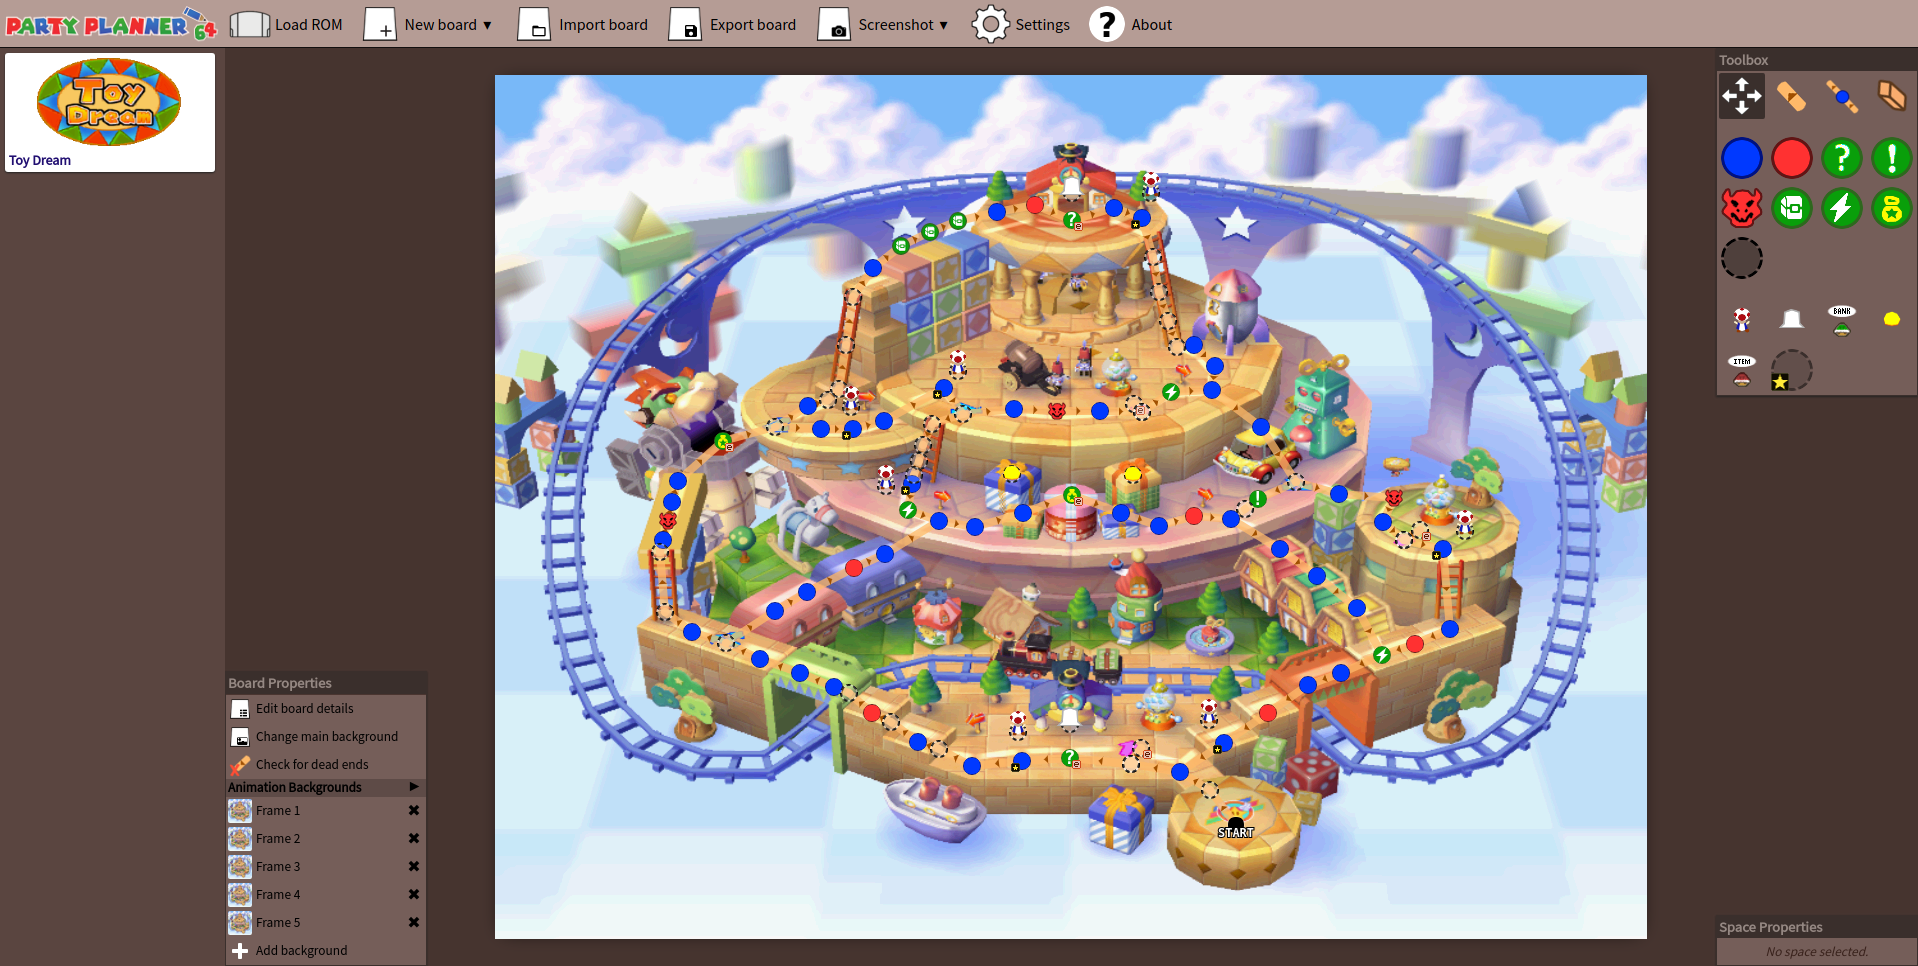 Partyplanner64 Mario Party Board Editor